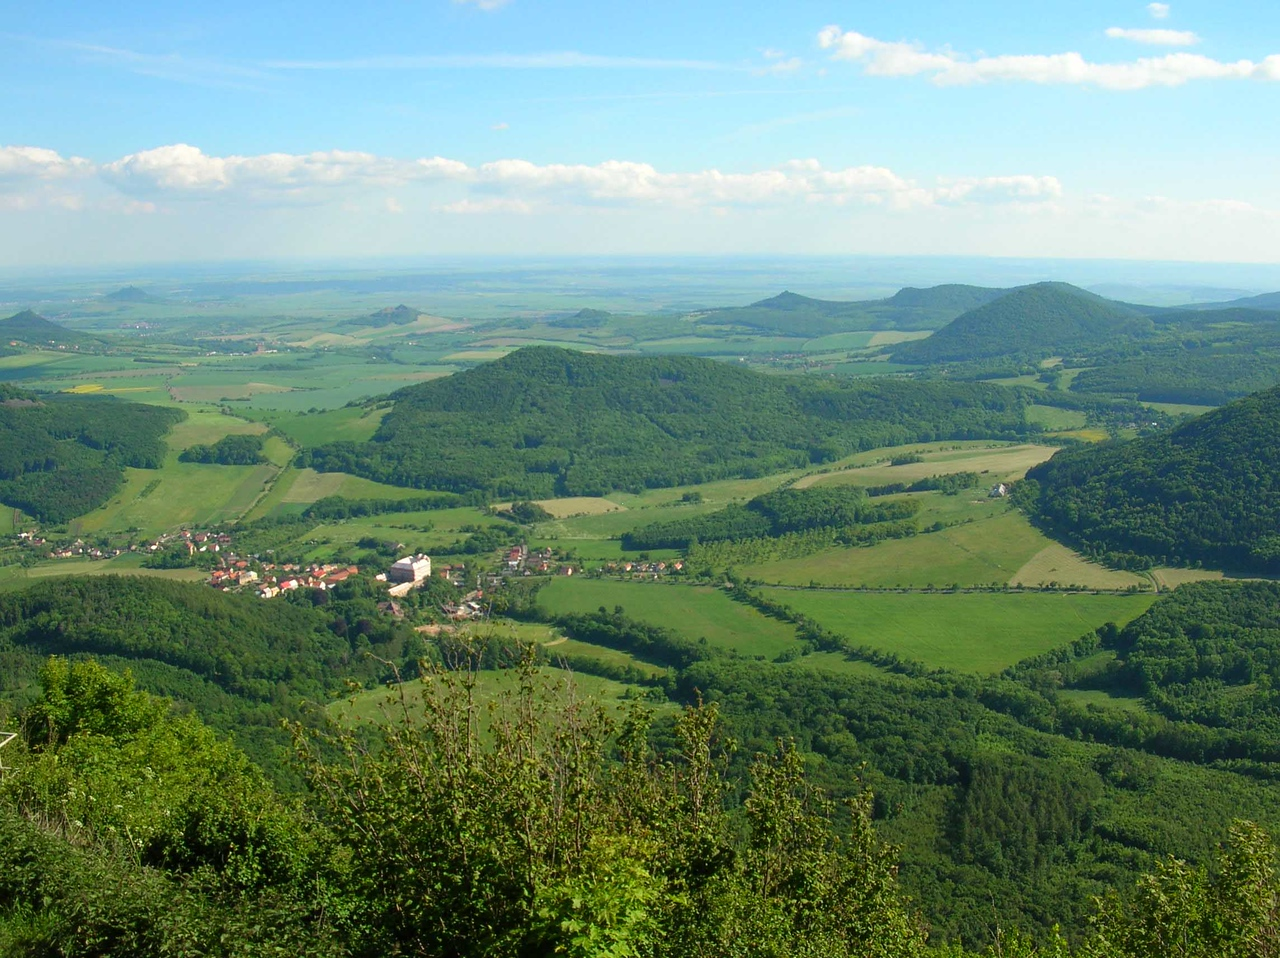 The view from Milesovka - 2006